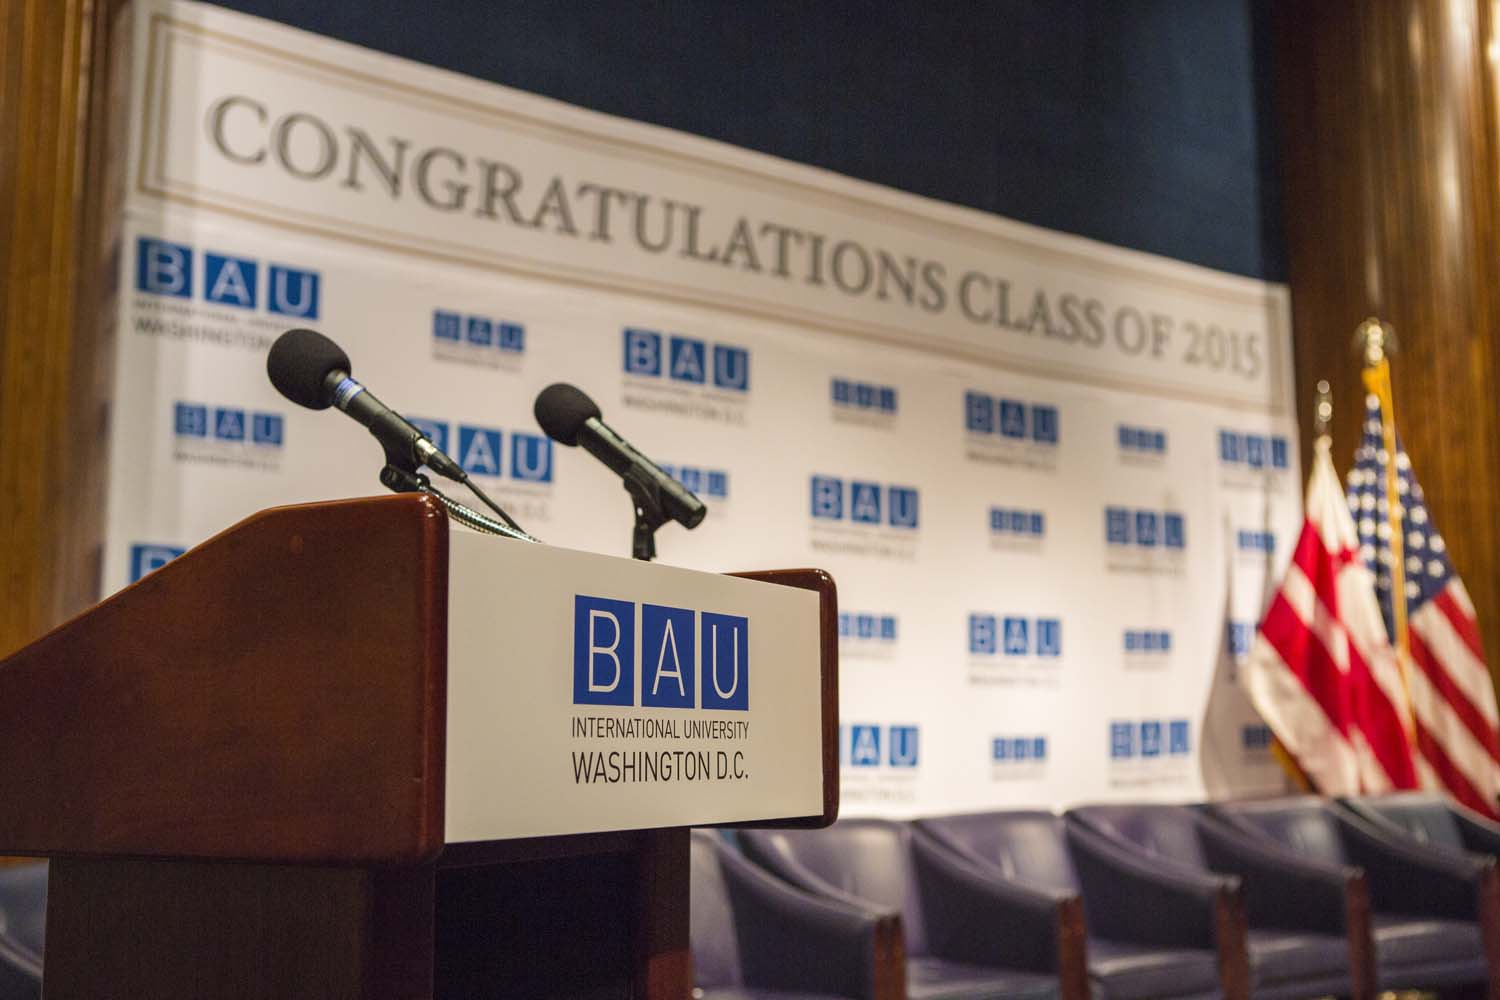 https://content.bau.edu.tr/BAU International University